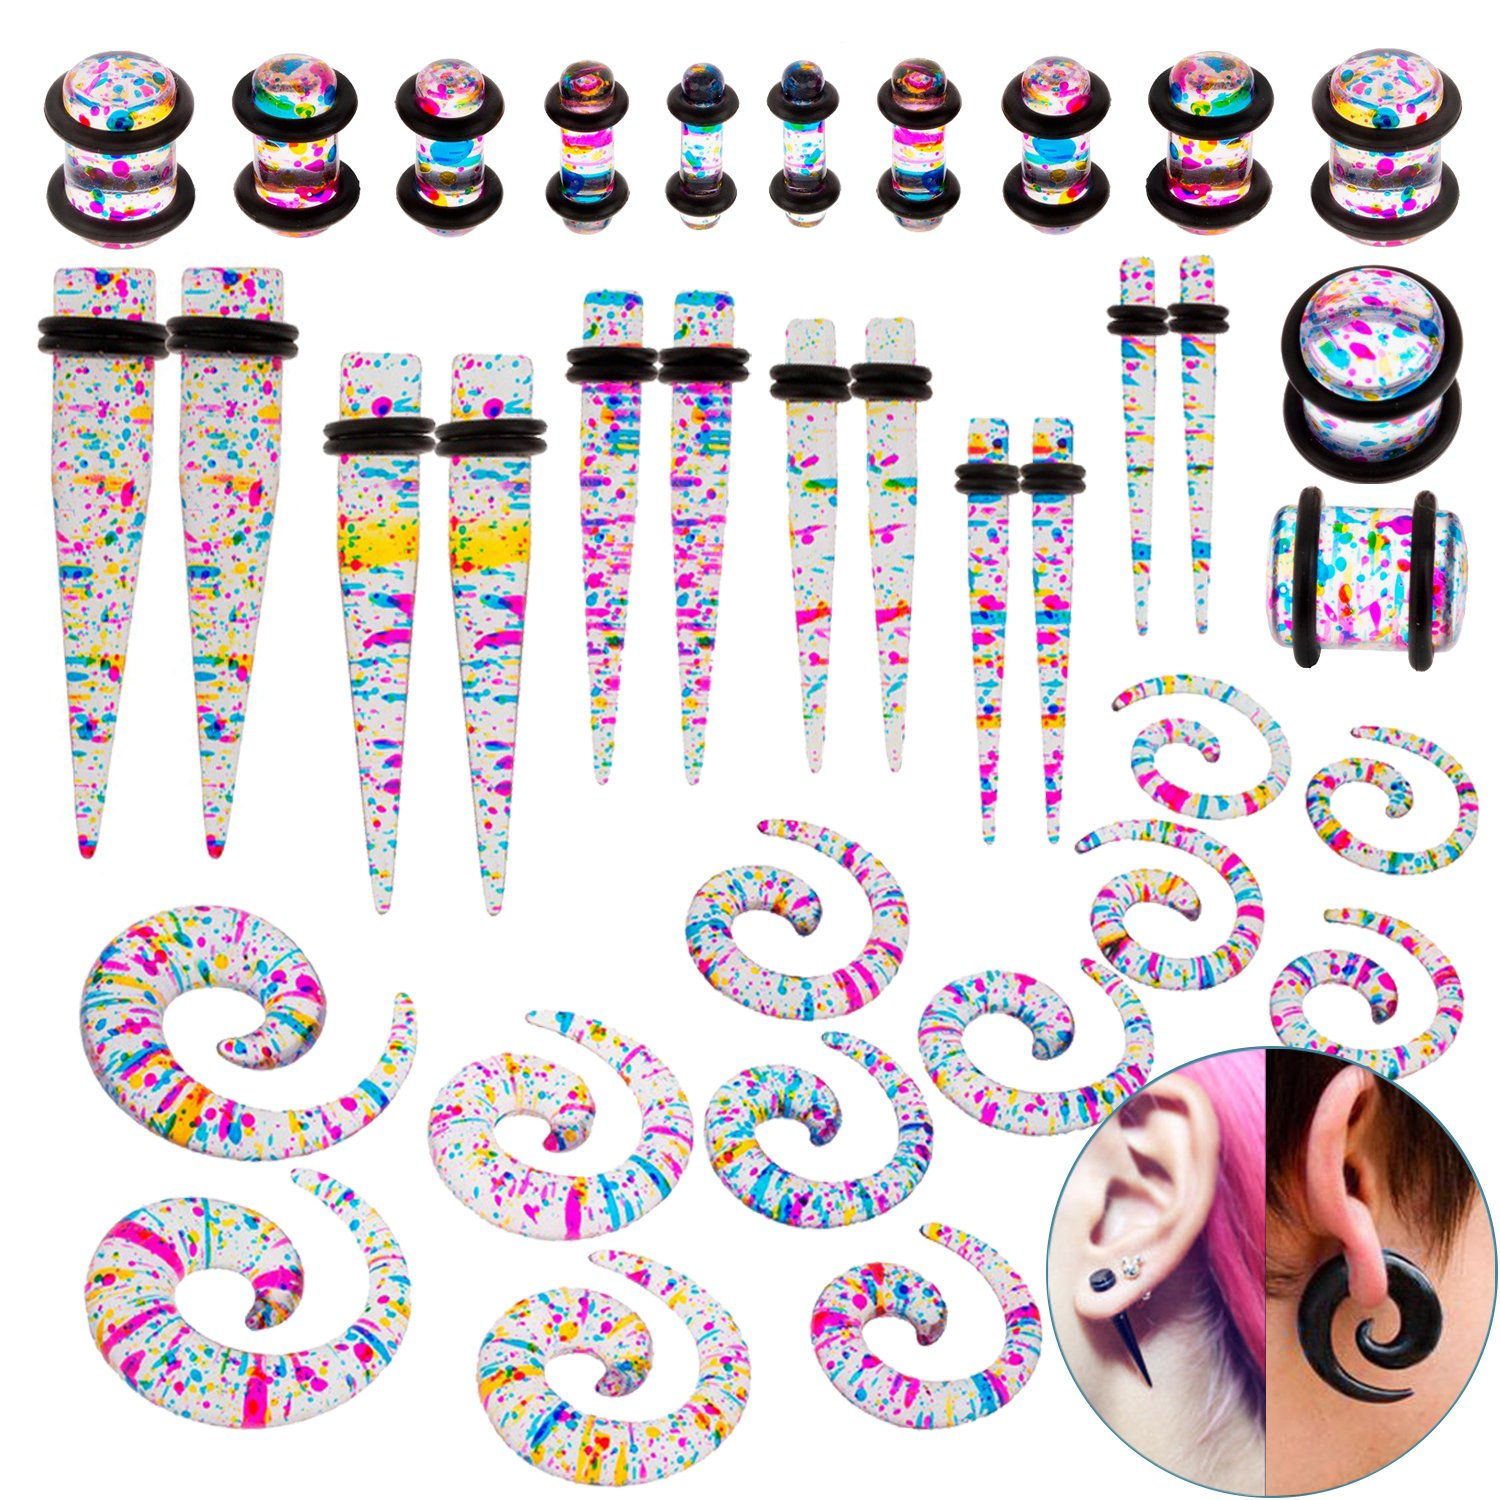 36pcs Tapers and Plugs With O Rings / Piercings Stretchers / Expanders Kit / Set / Lot With Different Gauges / Sizes for Ears / Earlobes Stretching VAGA AHGRD008516